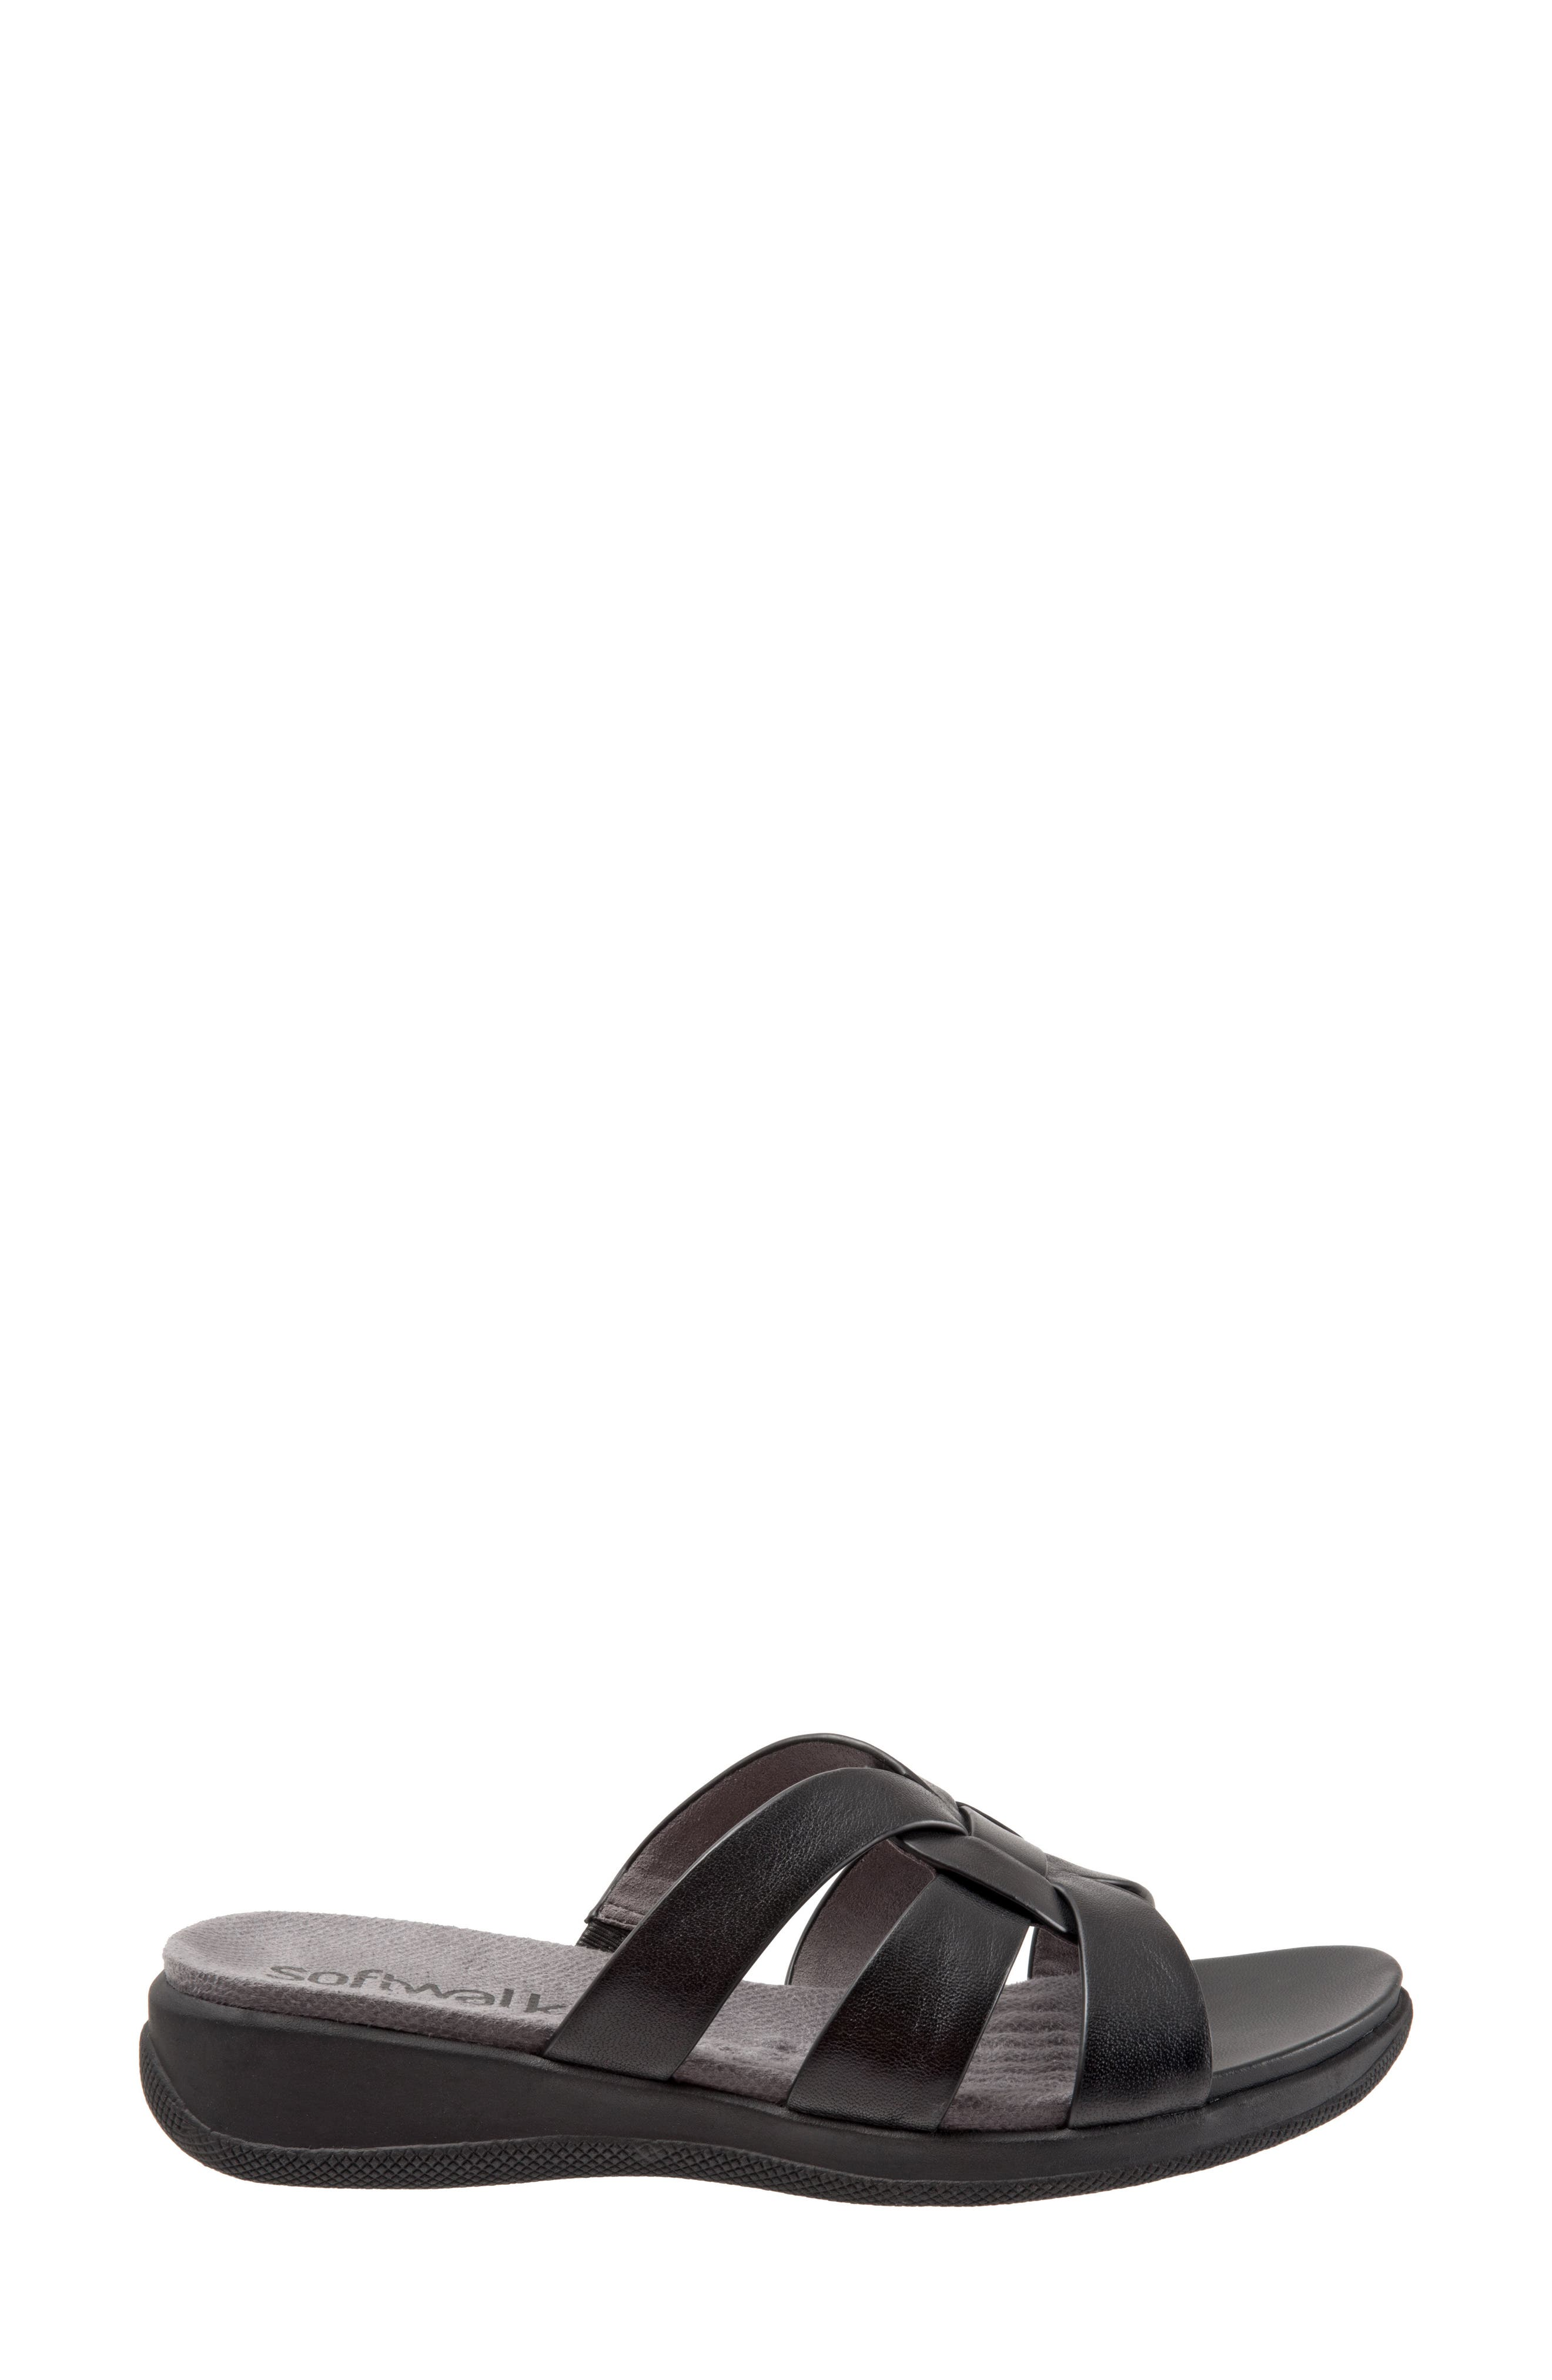 Thompson Slide Sandal,                             Alternate thumbnail 3, color,                             001